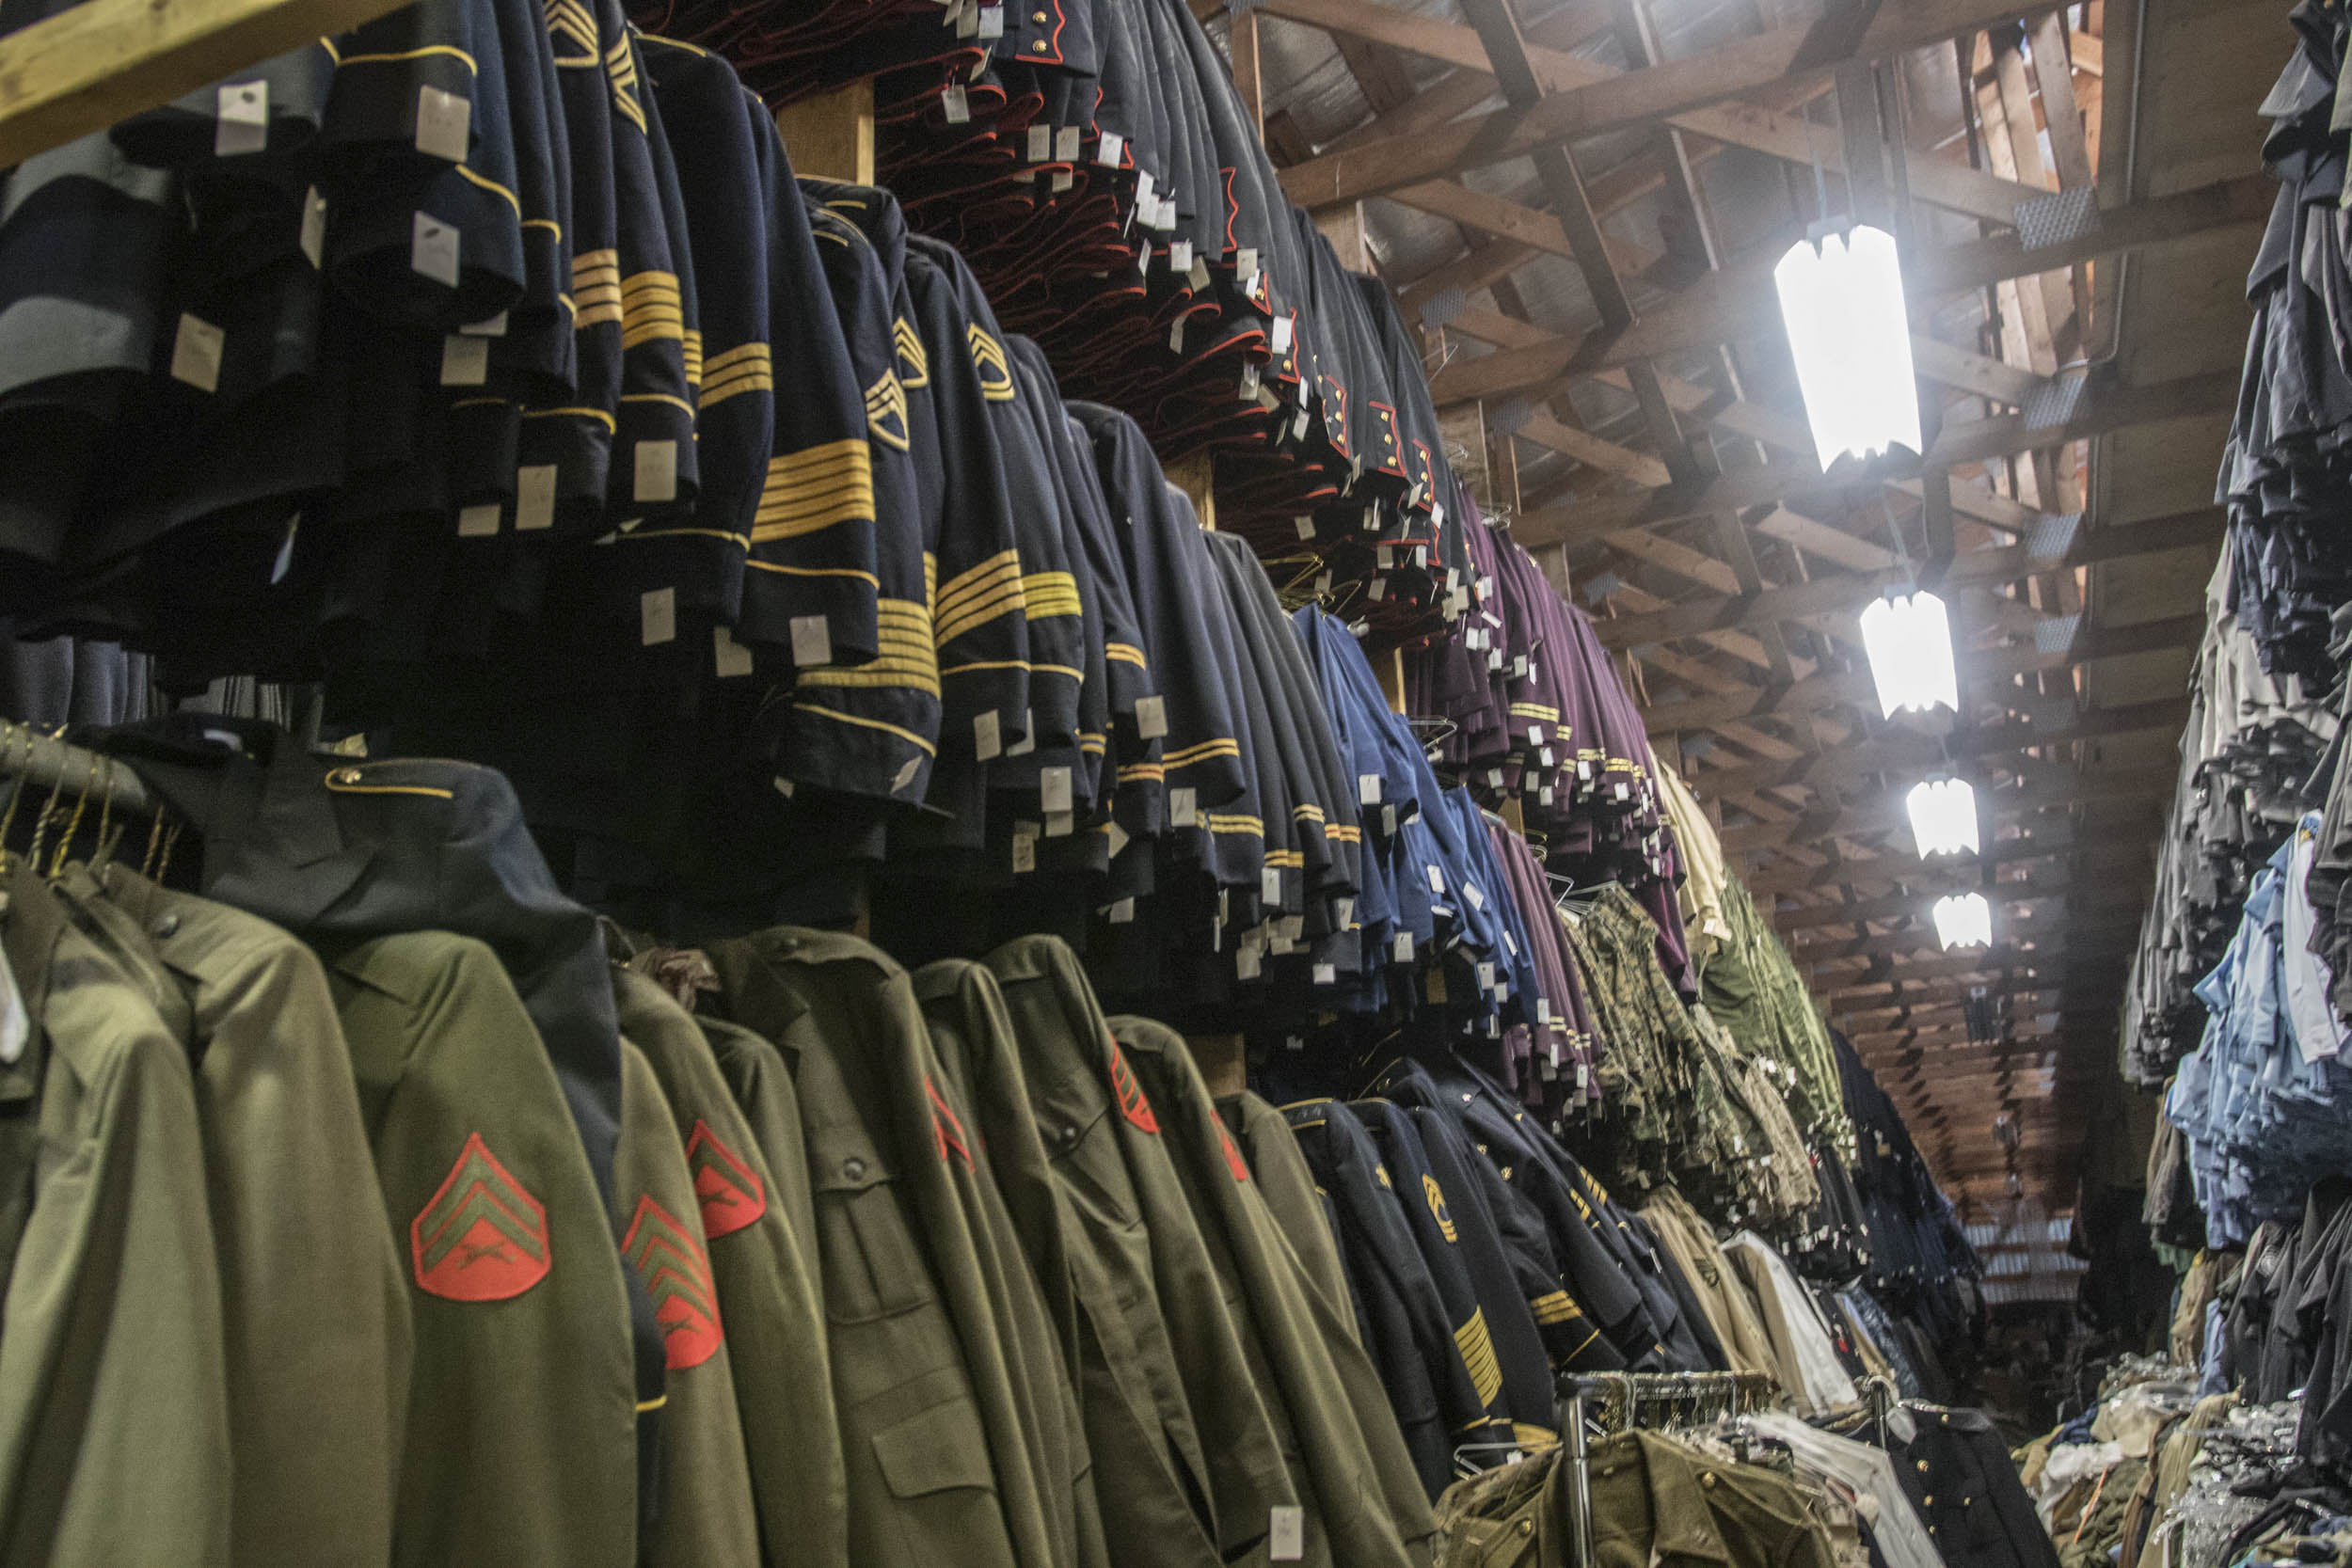 Some 10,000 uniforms fill the main warehouse, each one perfectly authentic. The average age is around 80 years old, as some of them date back to the Revolutionary War. Newby considers it a personal responsibility to be perfectly accurate to the period.